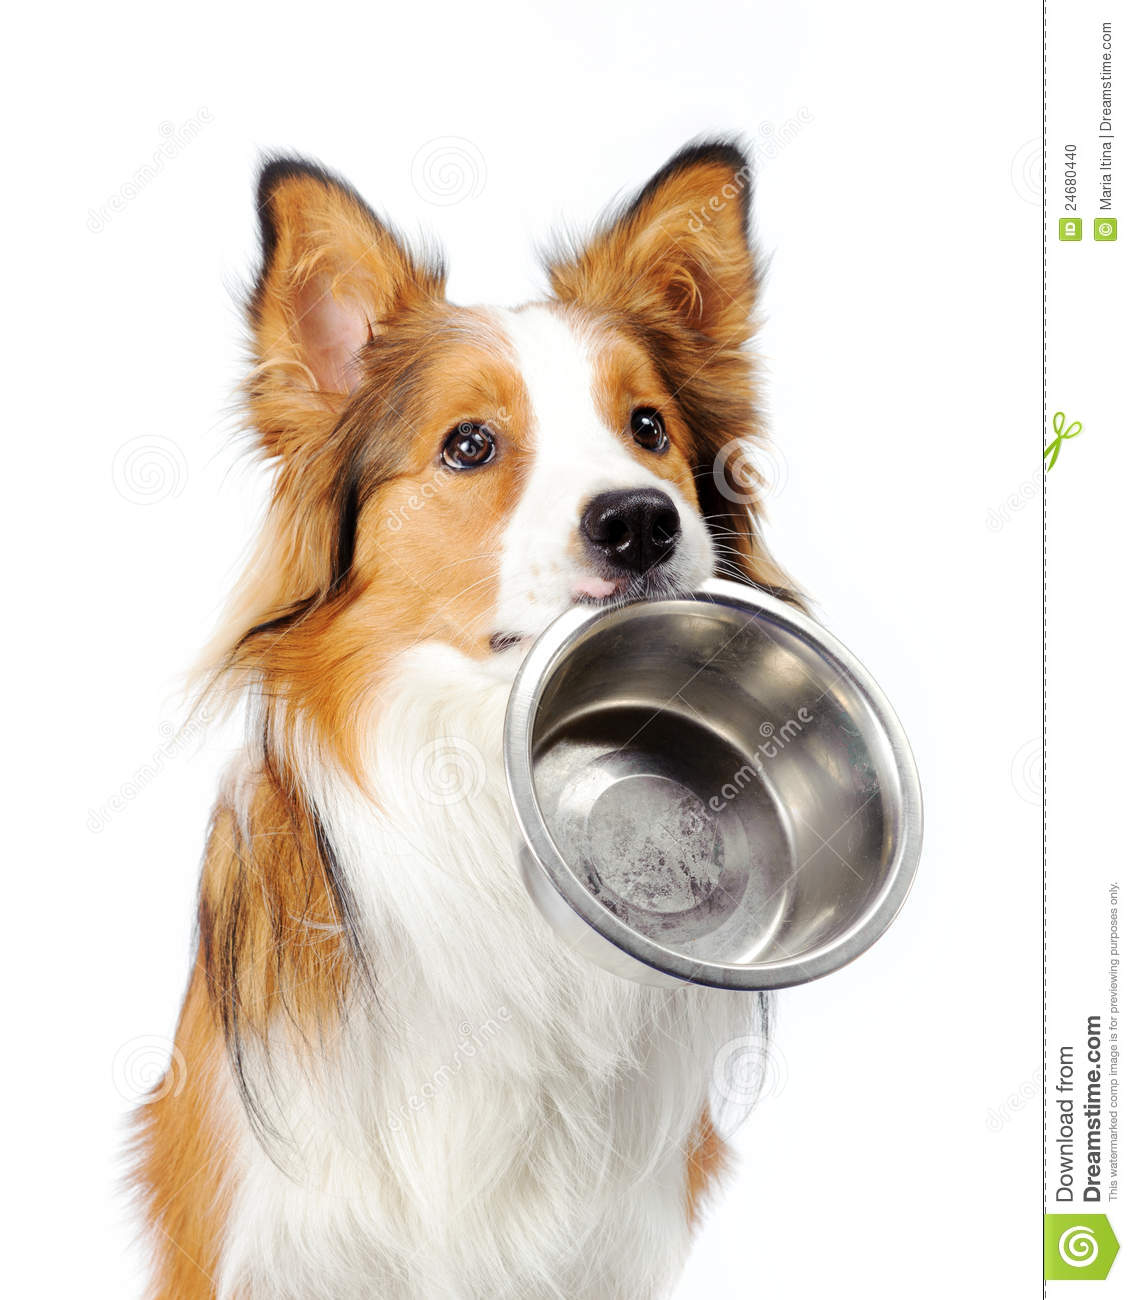 dog with bowl stock photo image 24680440 Border Collie Outline Border Collie Outline